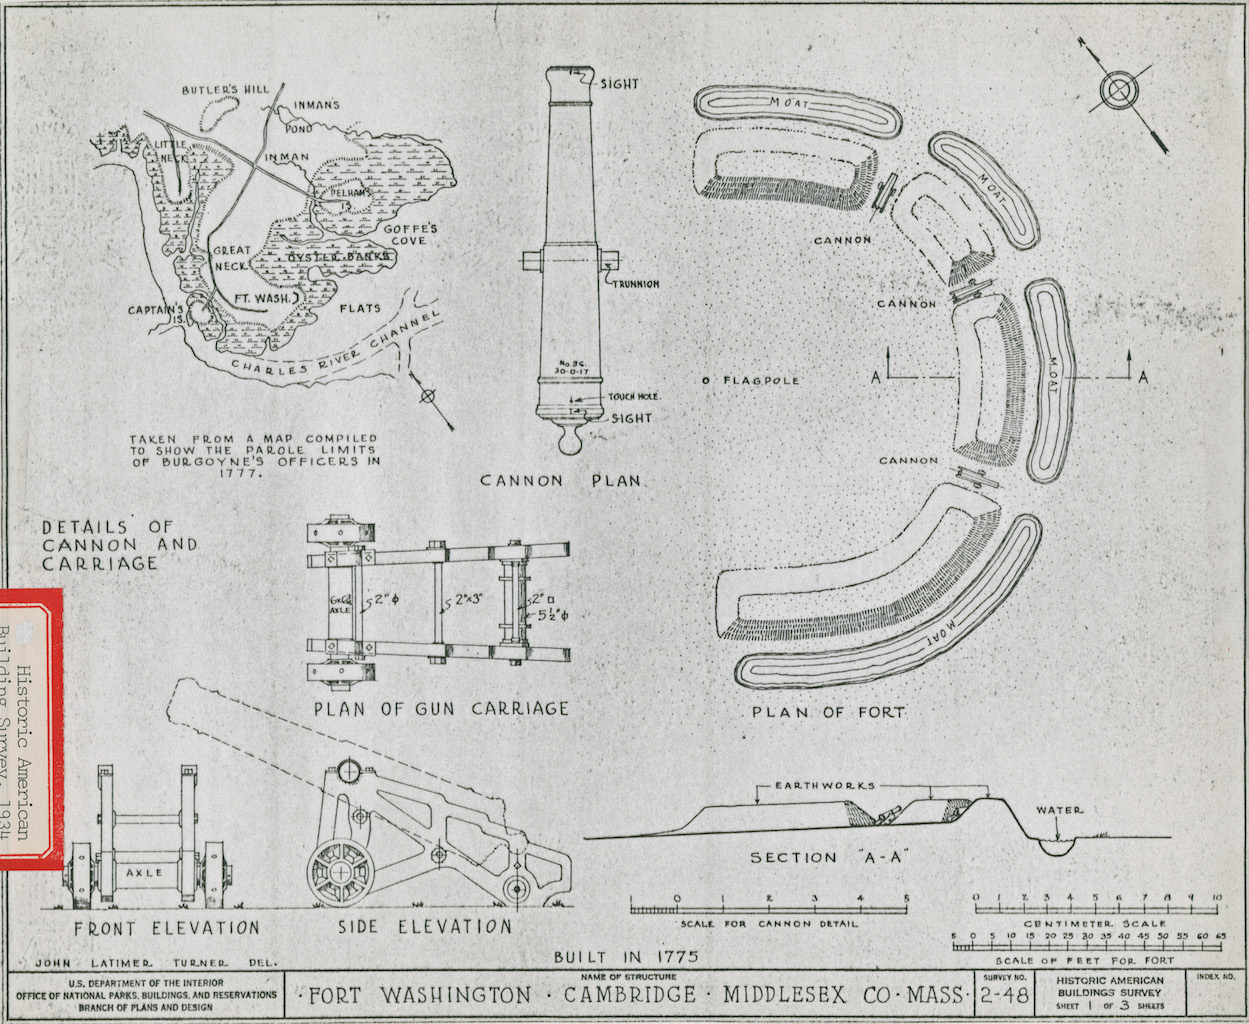 Map and diagrams of Fort Washington